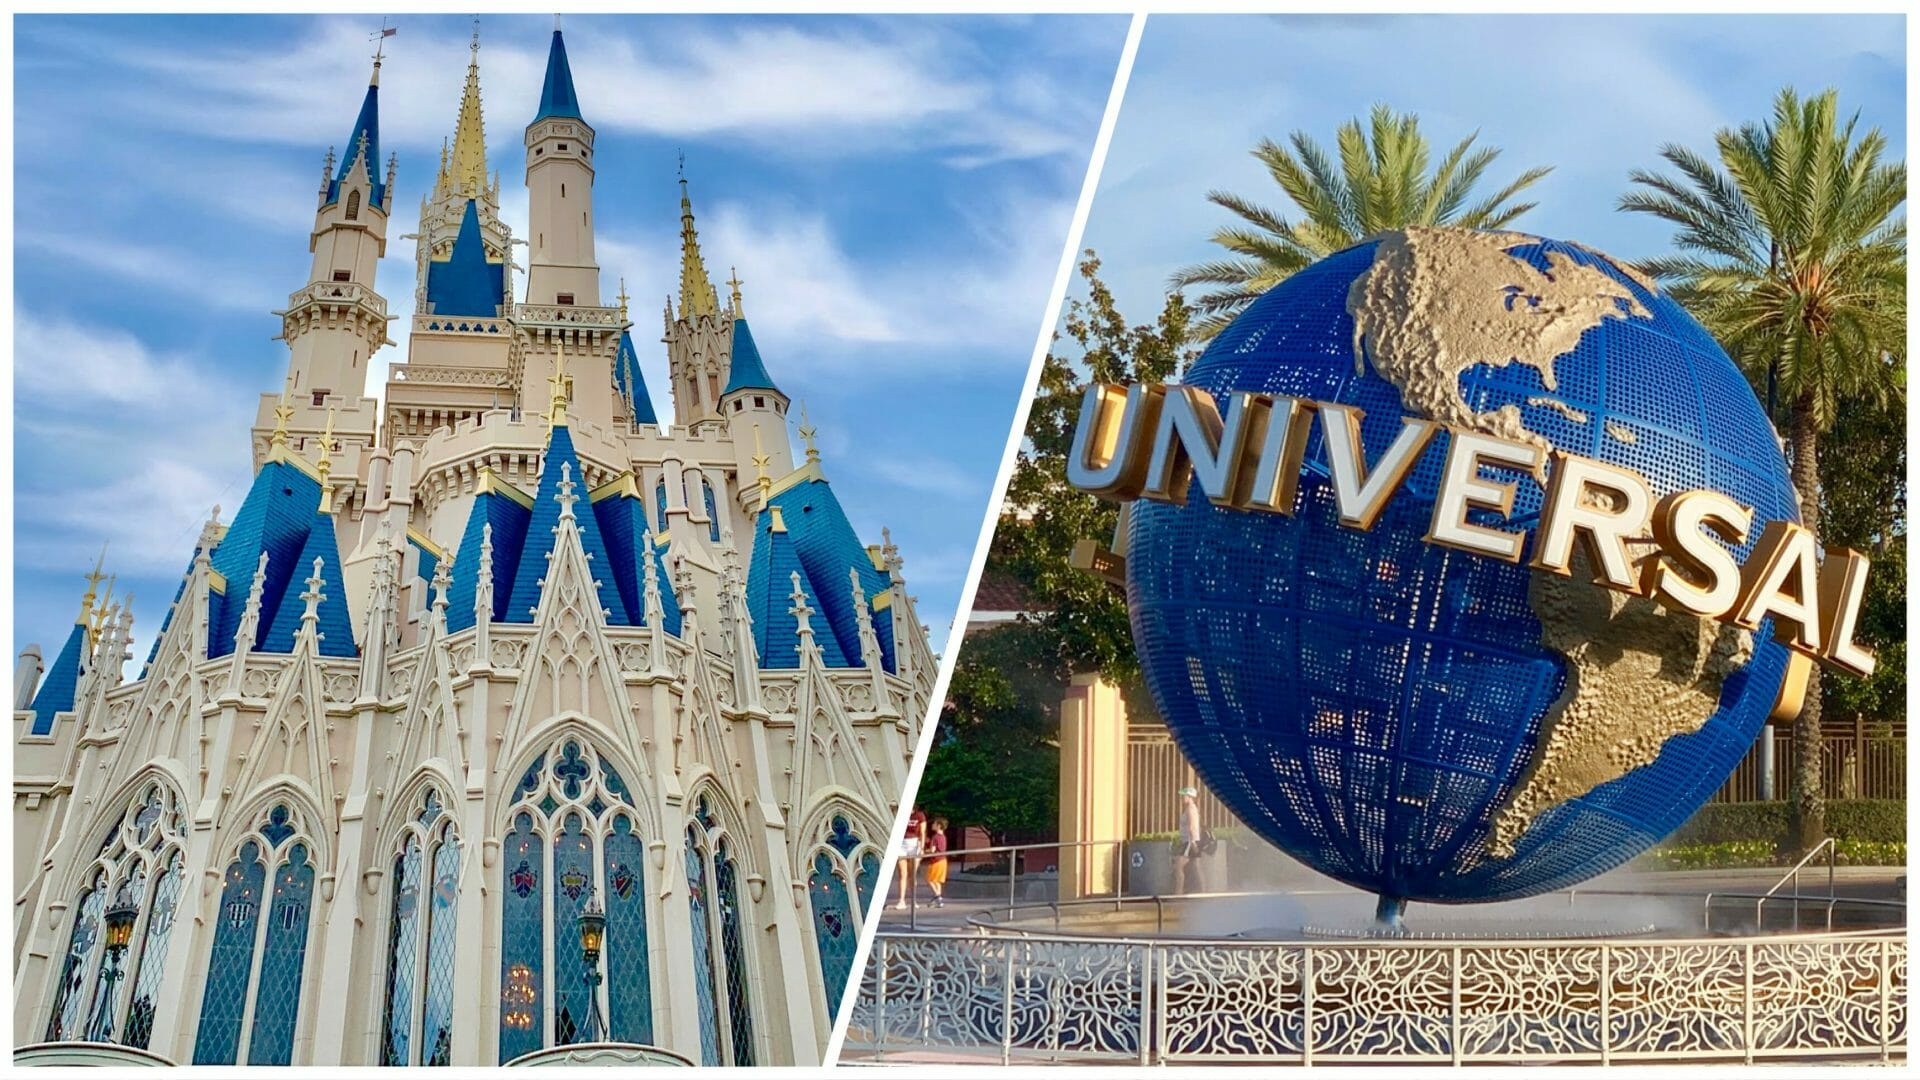 Getting from Disney World to Universal